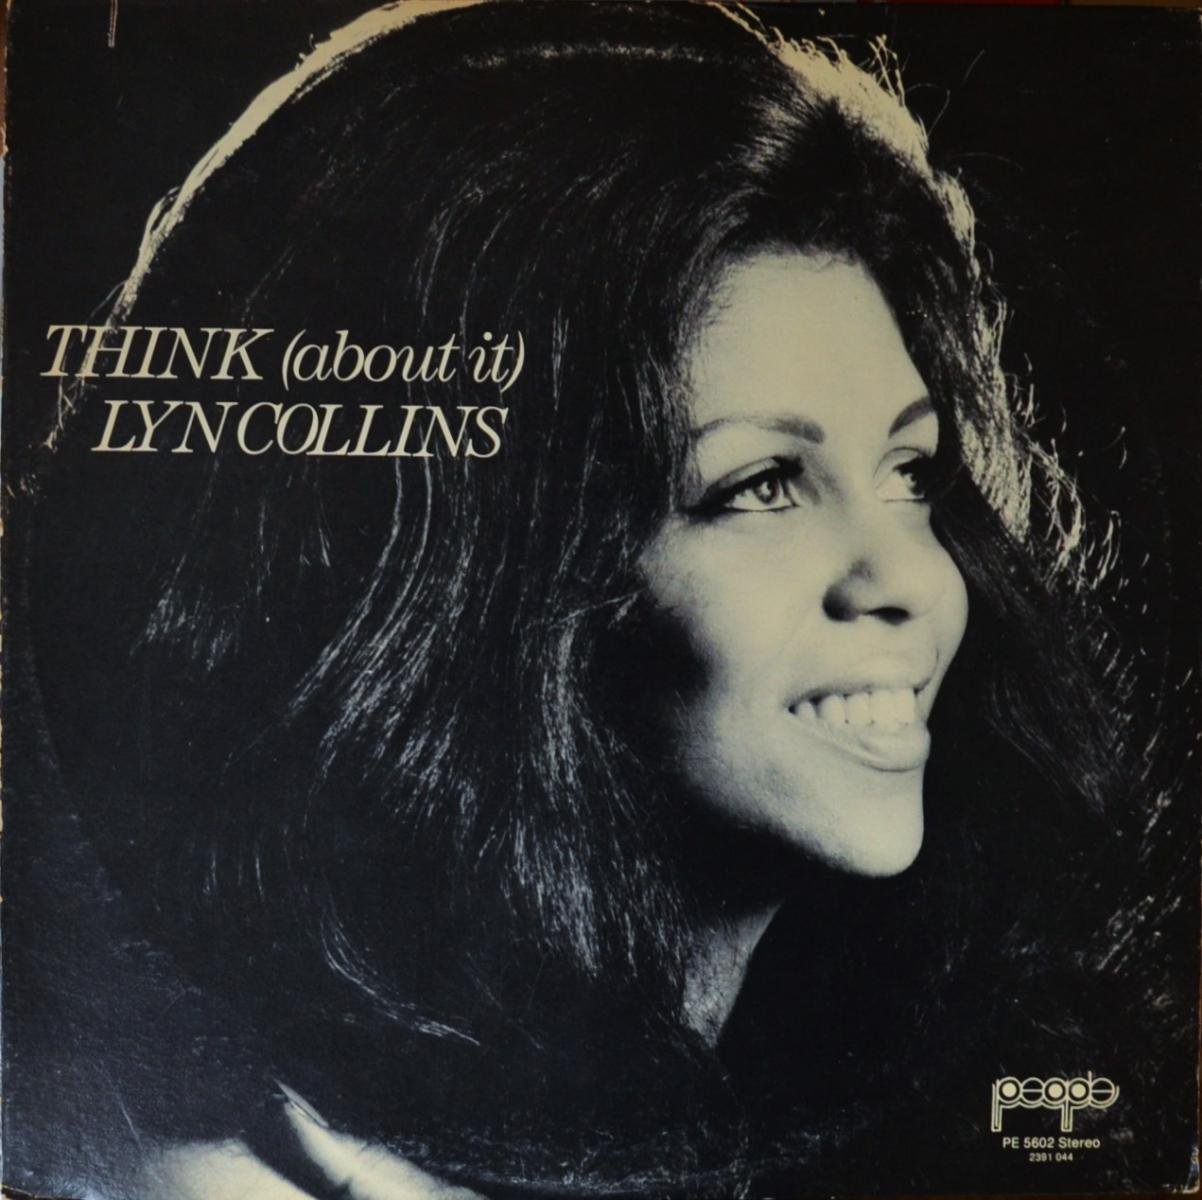 LYN COLLINS / THINK (ABOUT IT) (LP)